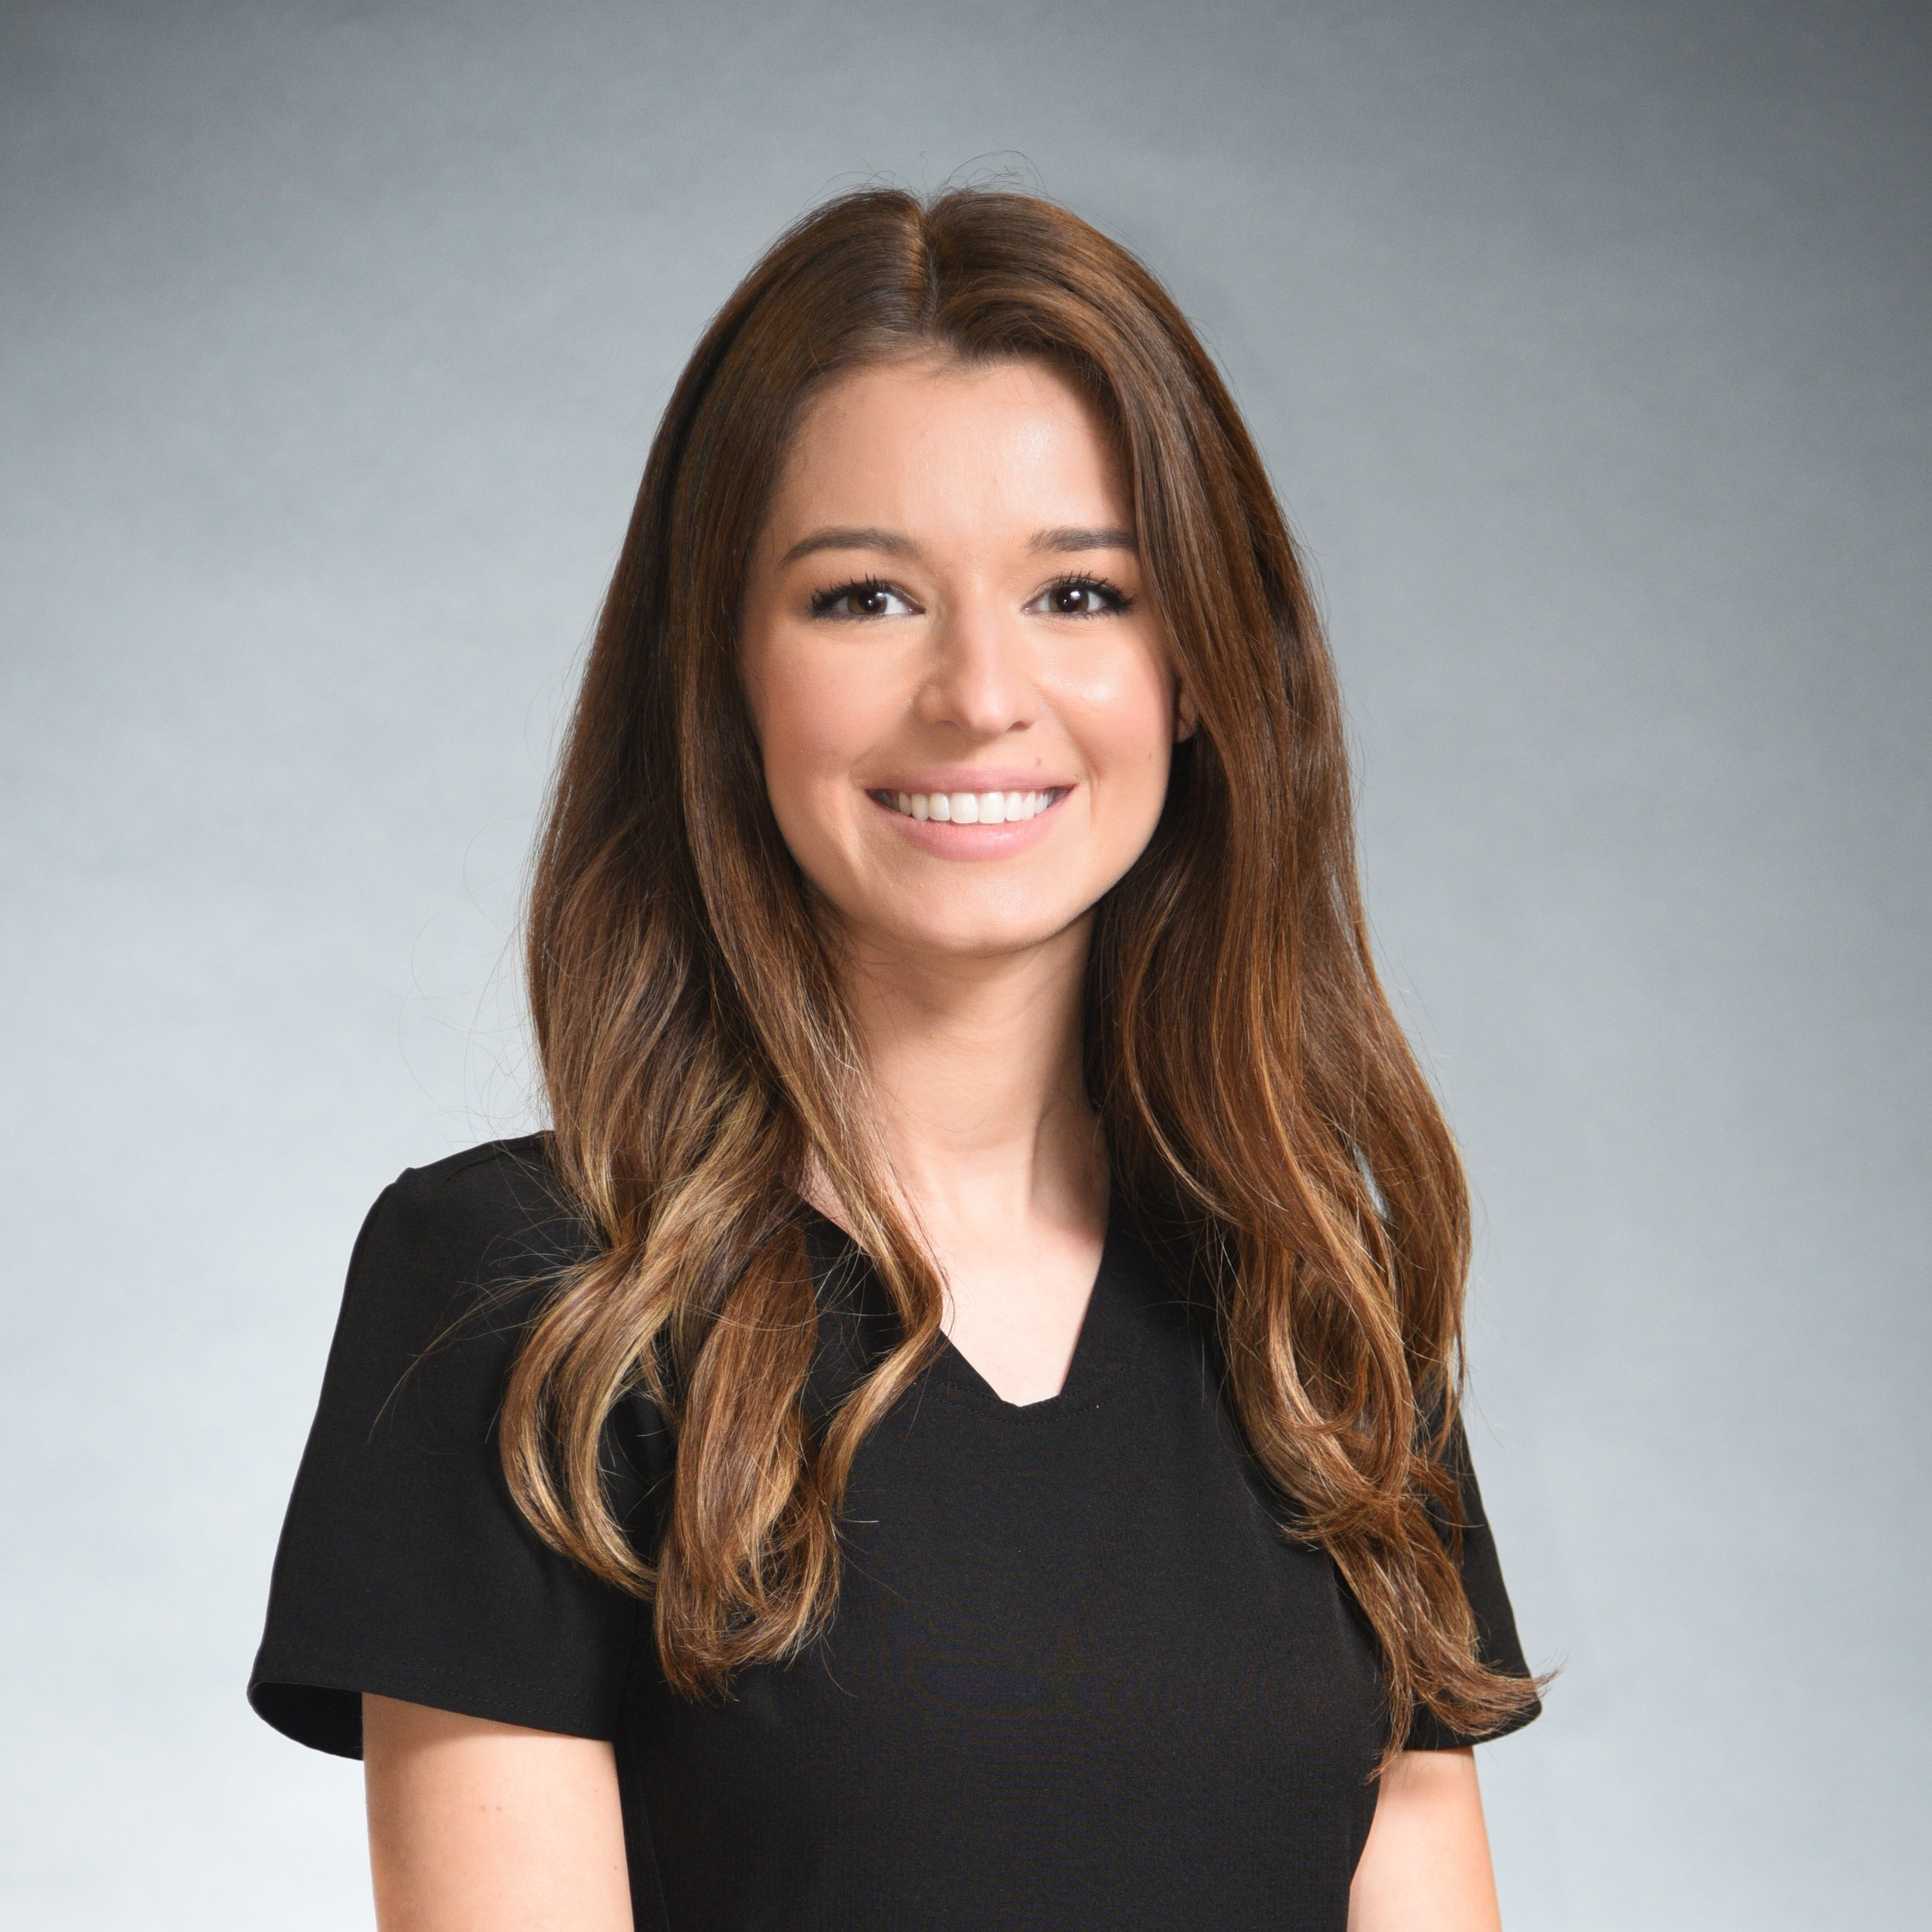 Lauren   Clinical Staff   Lauren has been a part of the McNutt Pediatric Dentistry office family for over 4 years.